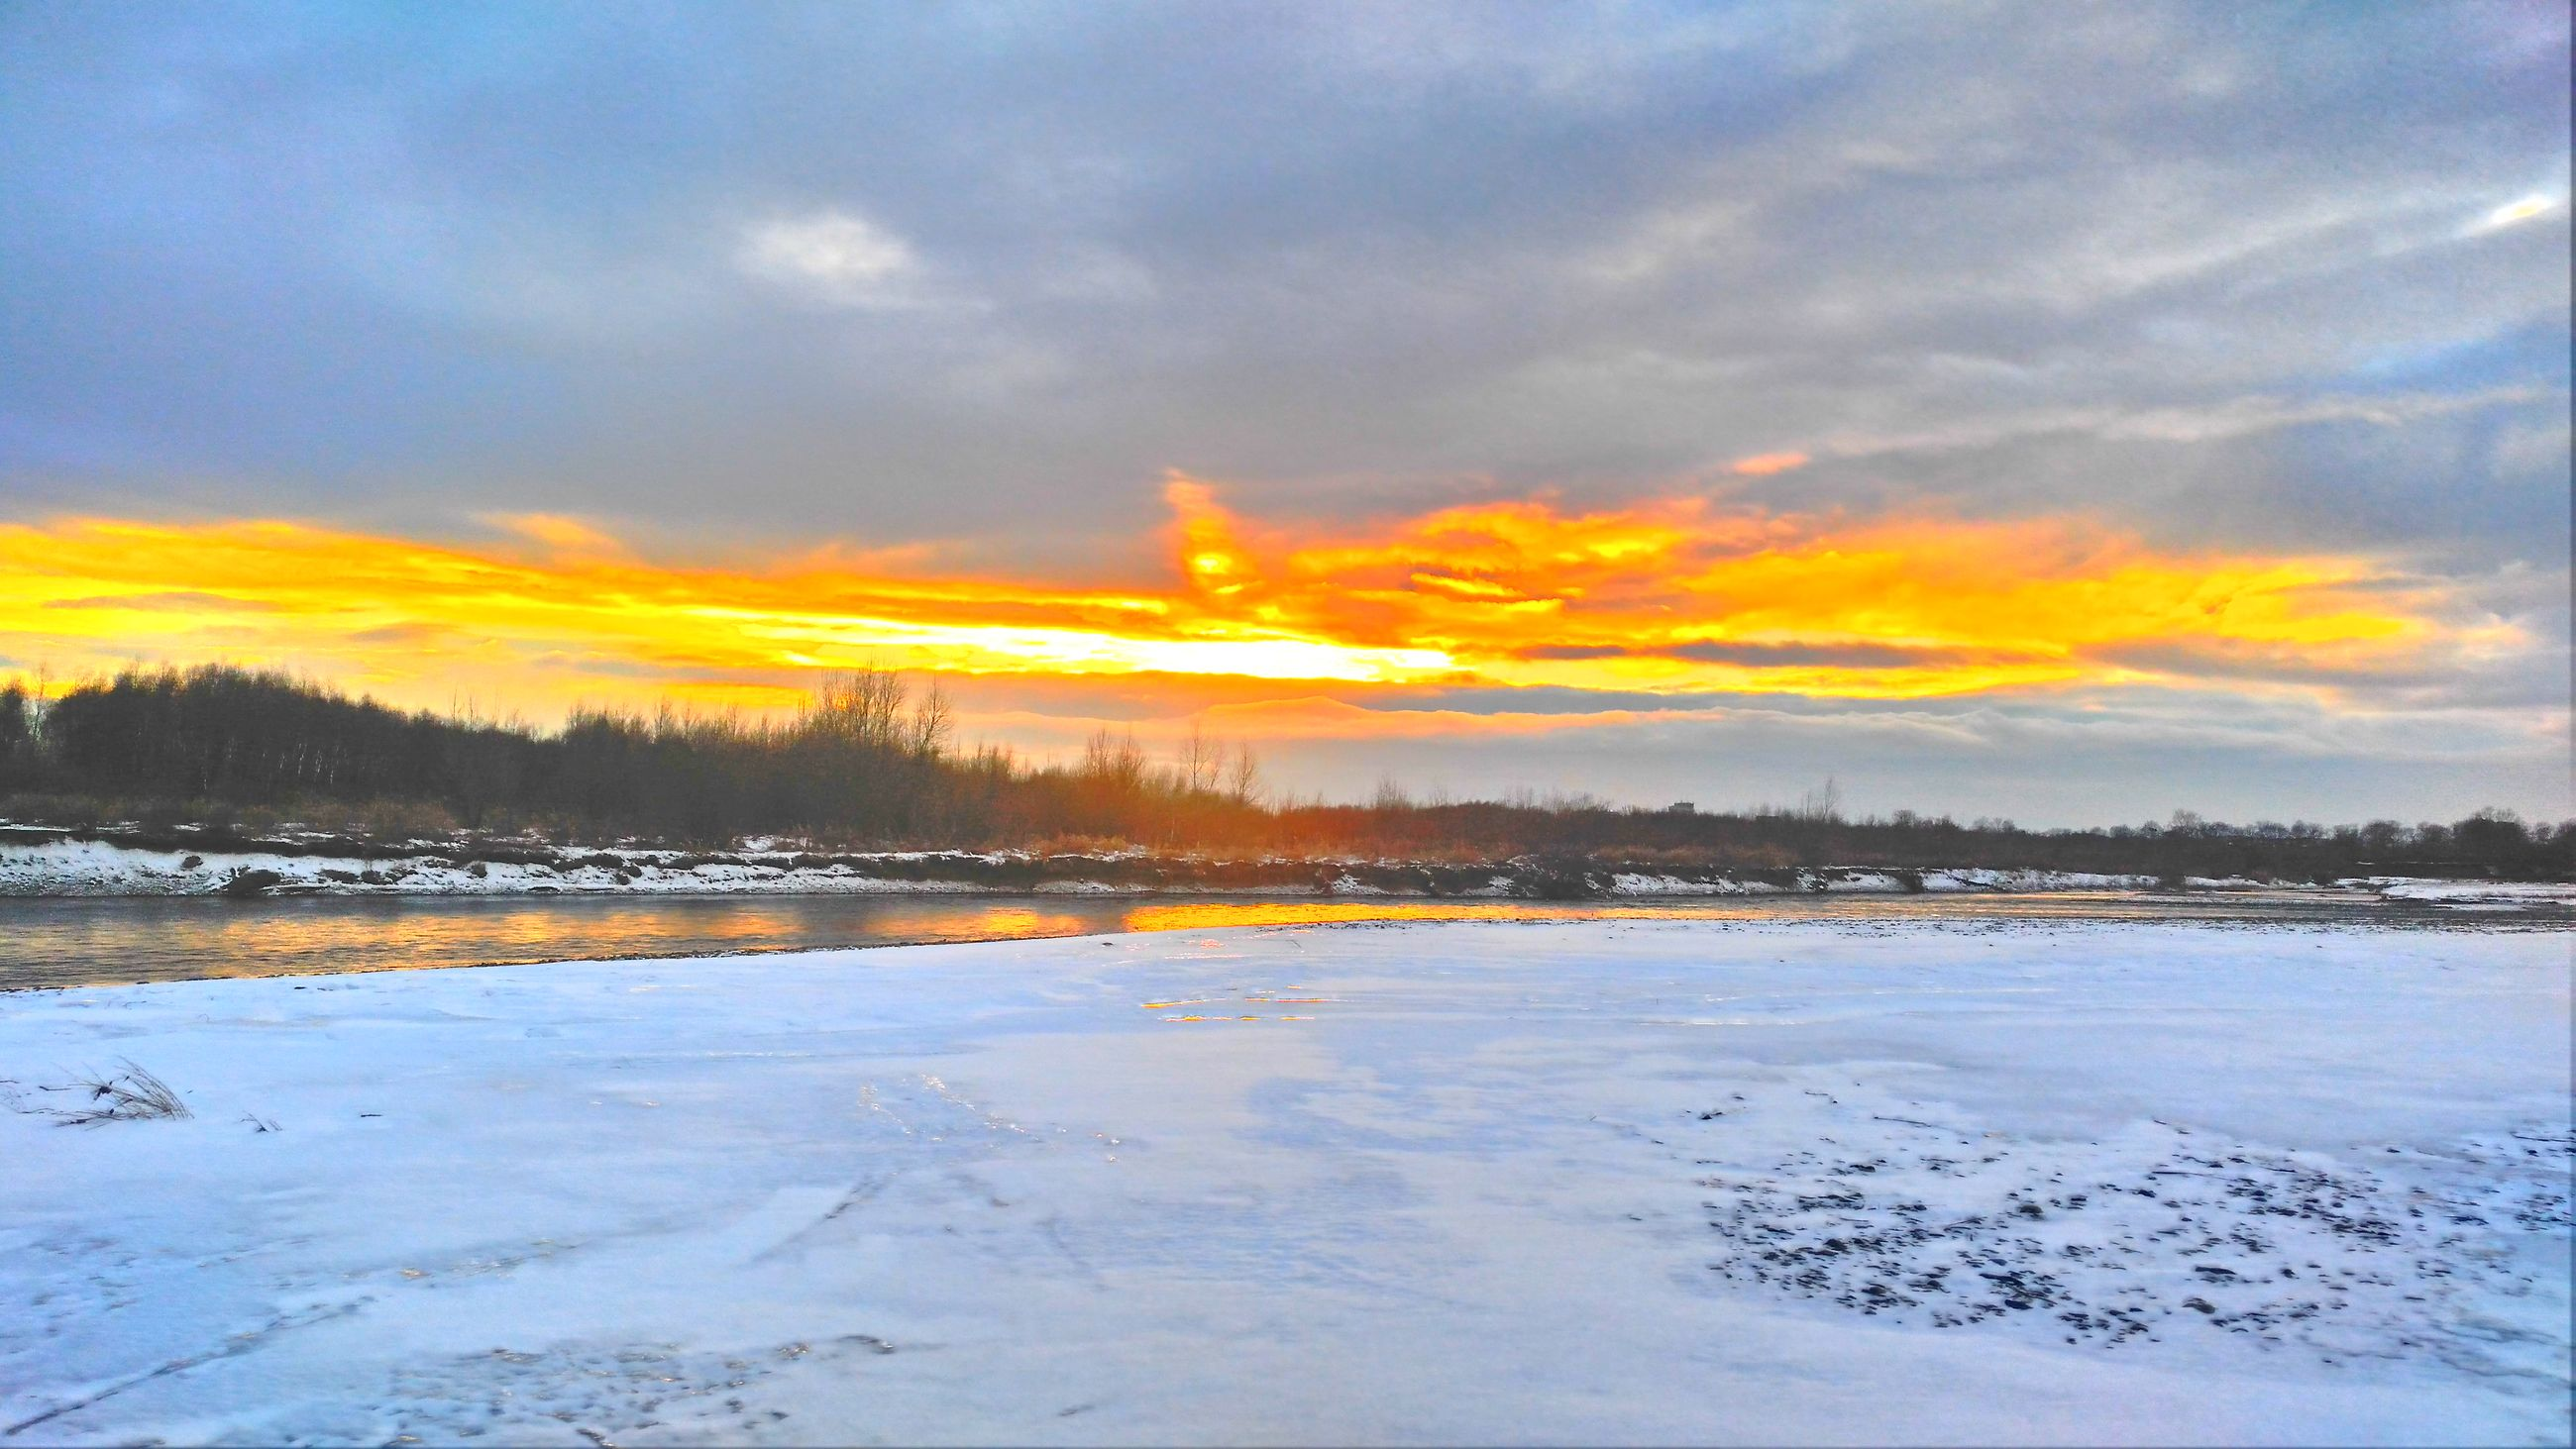 cold temperature, winter, sunset, snow, beauty in nature, nature, frozen, reflection, sky, ice, tree, cloud - sky, lake, outdoors, no people, dramatic sky, scenics, landscape, water, ice skate, ice rink, day